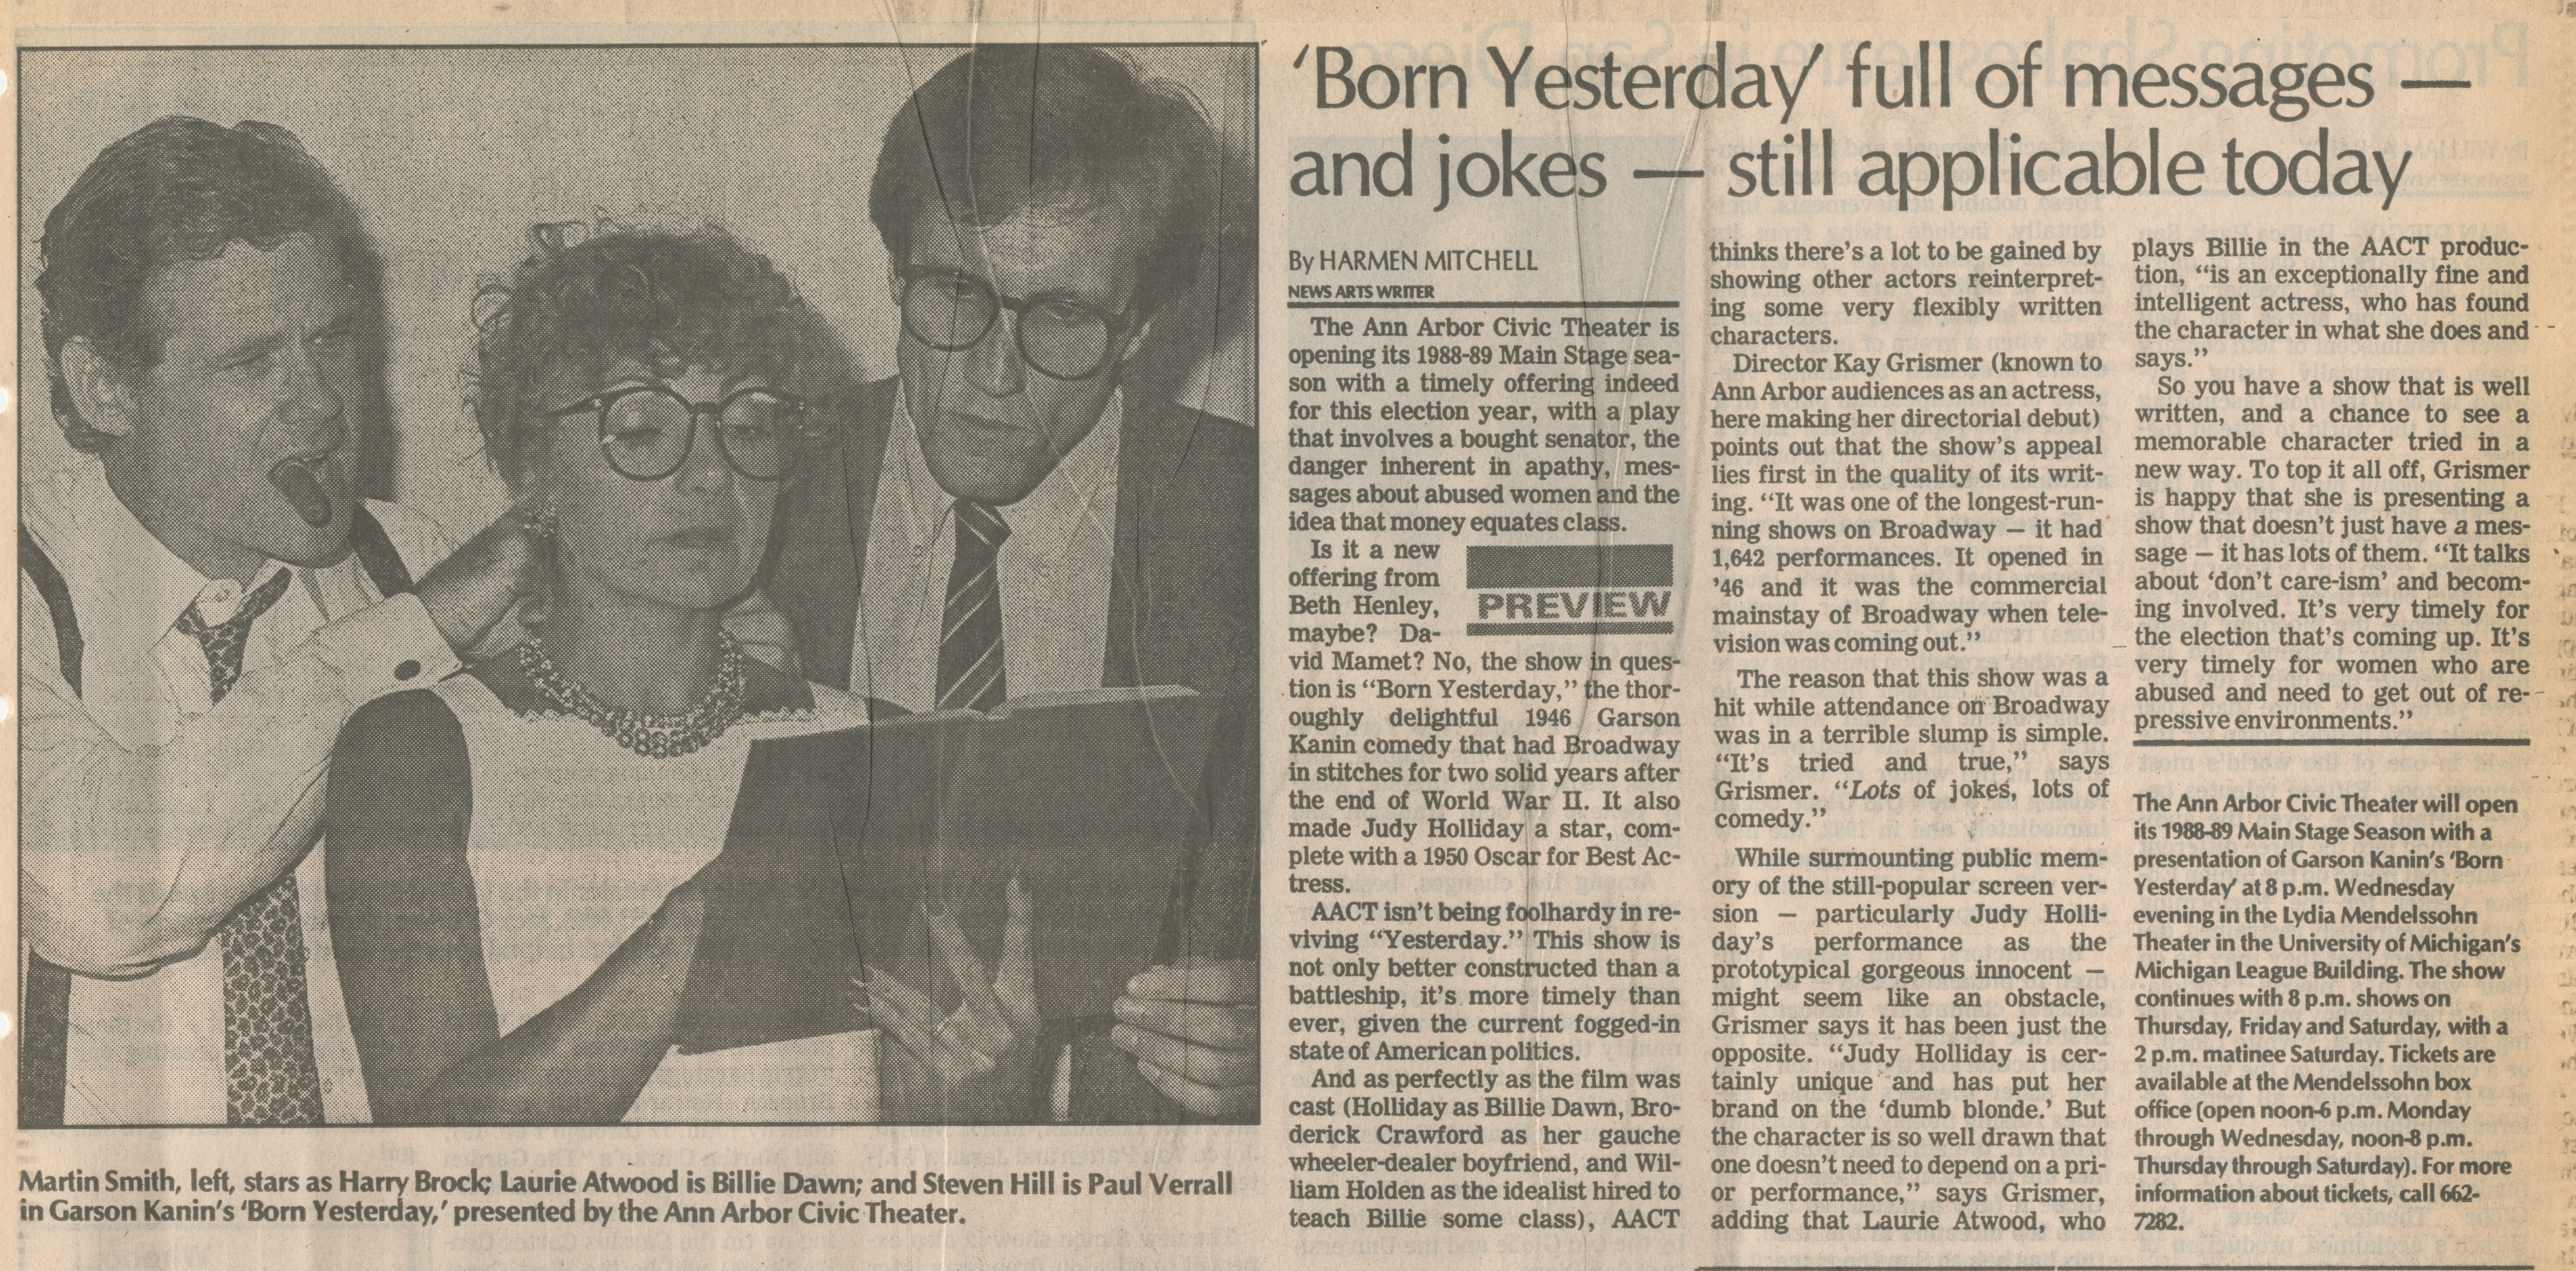 'Born Yesterday' Full Of Messages - And Jokes - Still Applicable Today image